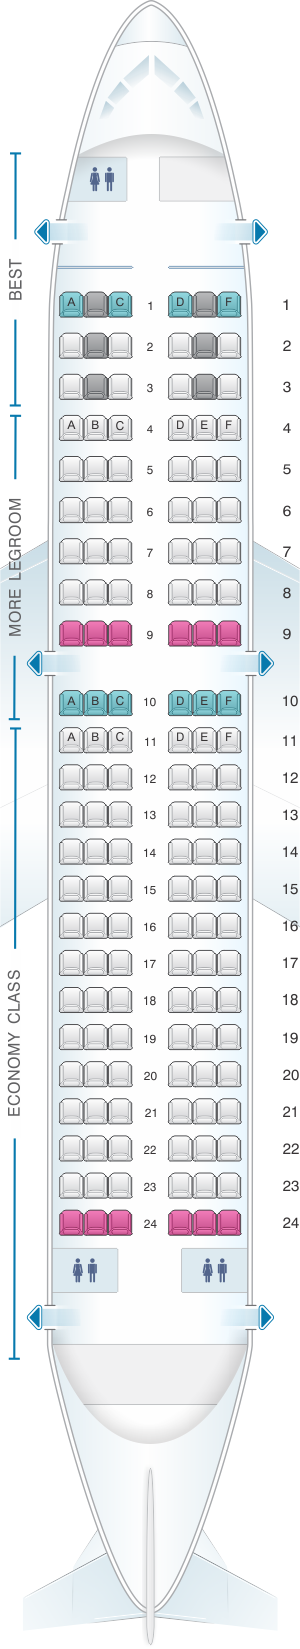 Seat map for Eurowings Airbus A319